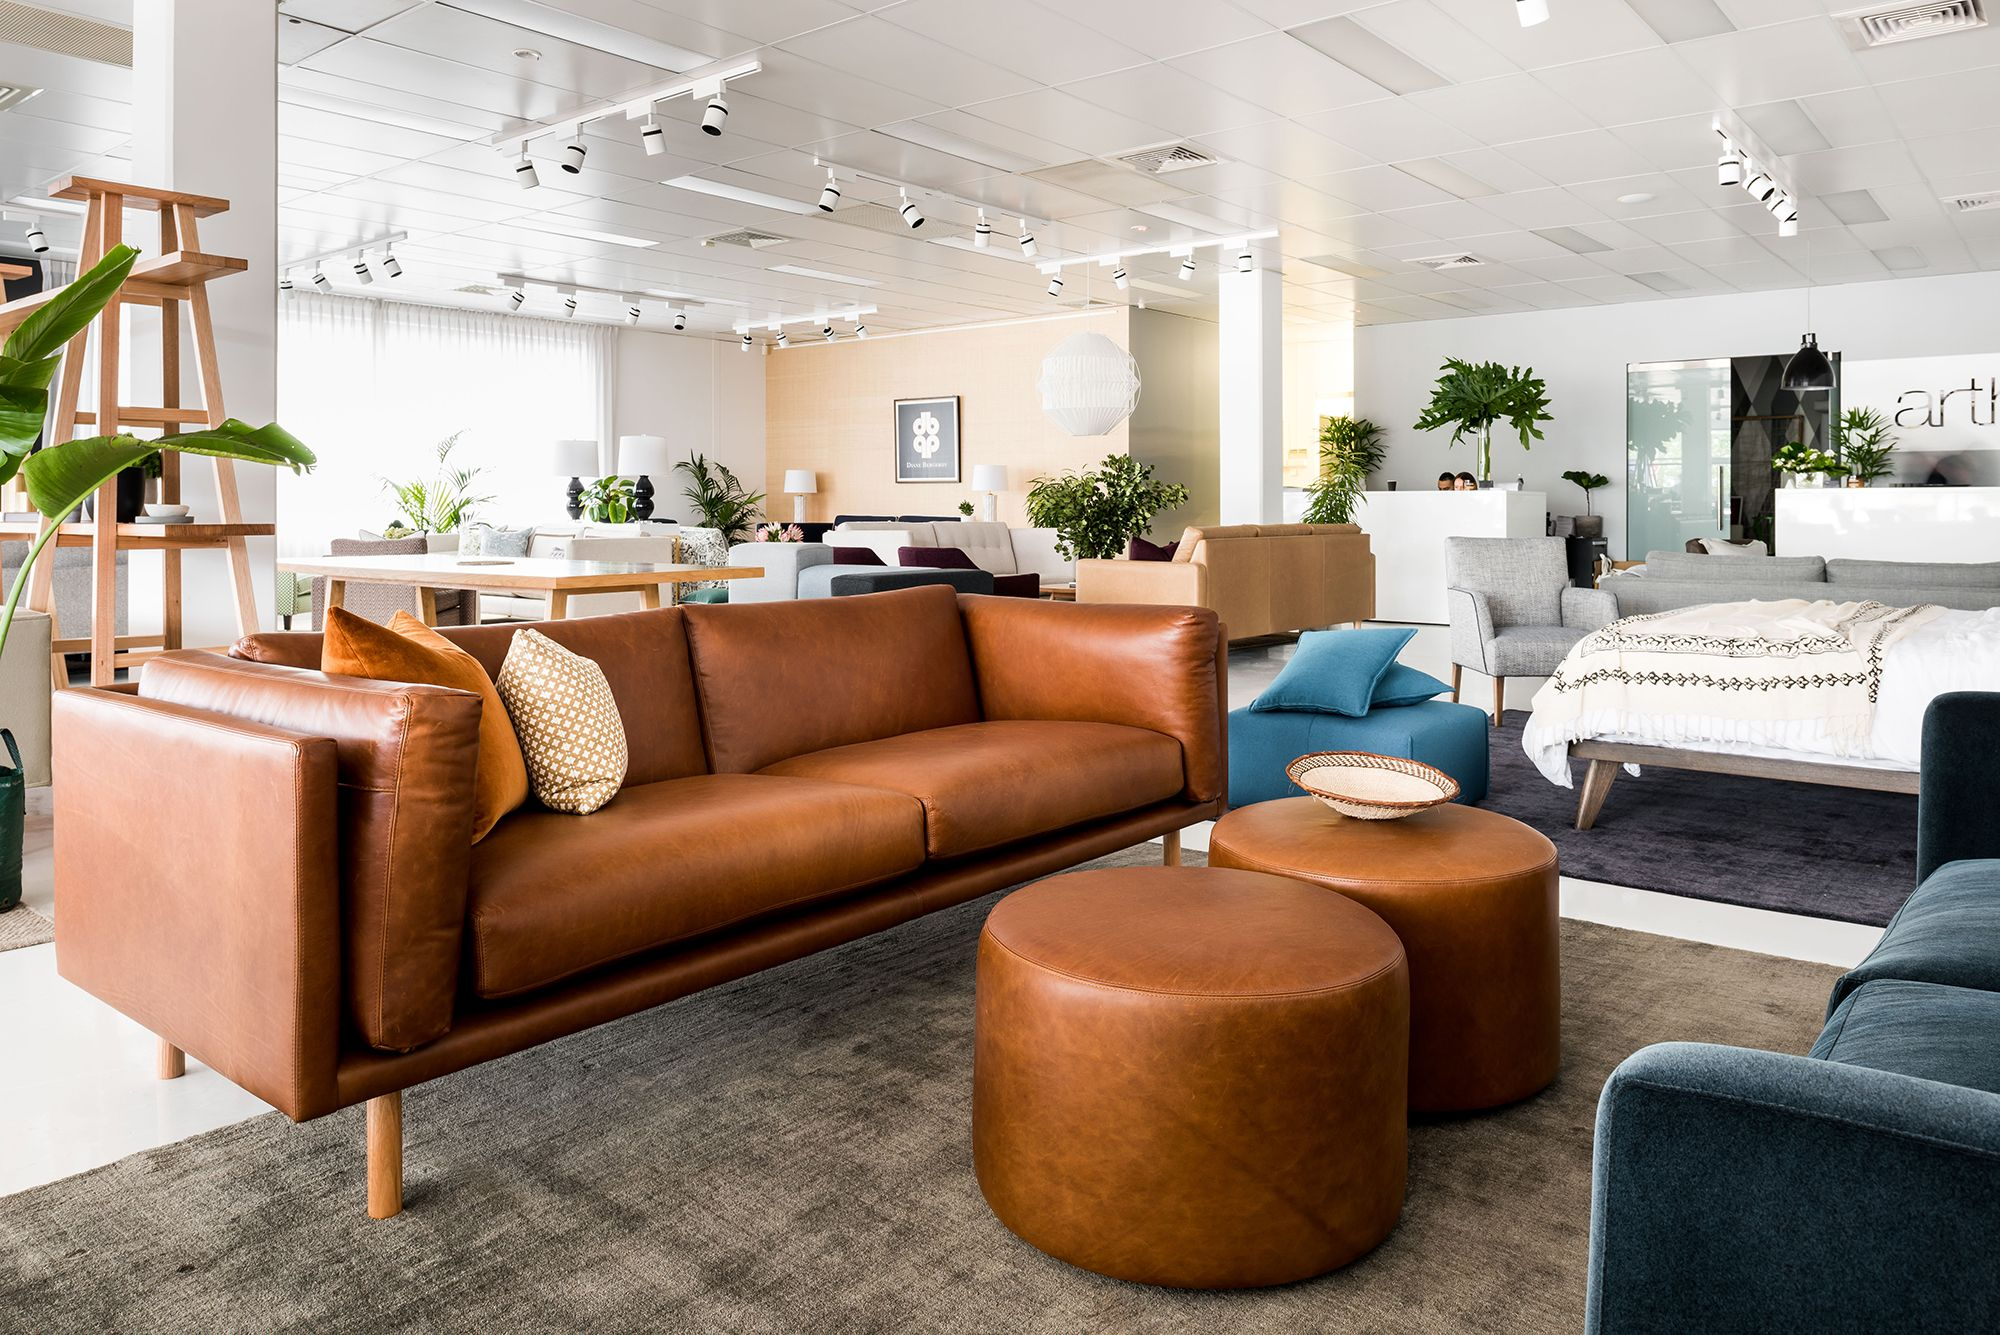 The Stunning Conrad Sofa In New Zealand Leather Accompanied By A Pair Of Arty Ottomans Inside Our Perth Show Sofas For Small Spaces Furniture Design Furniture